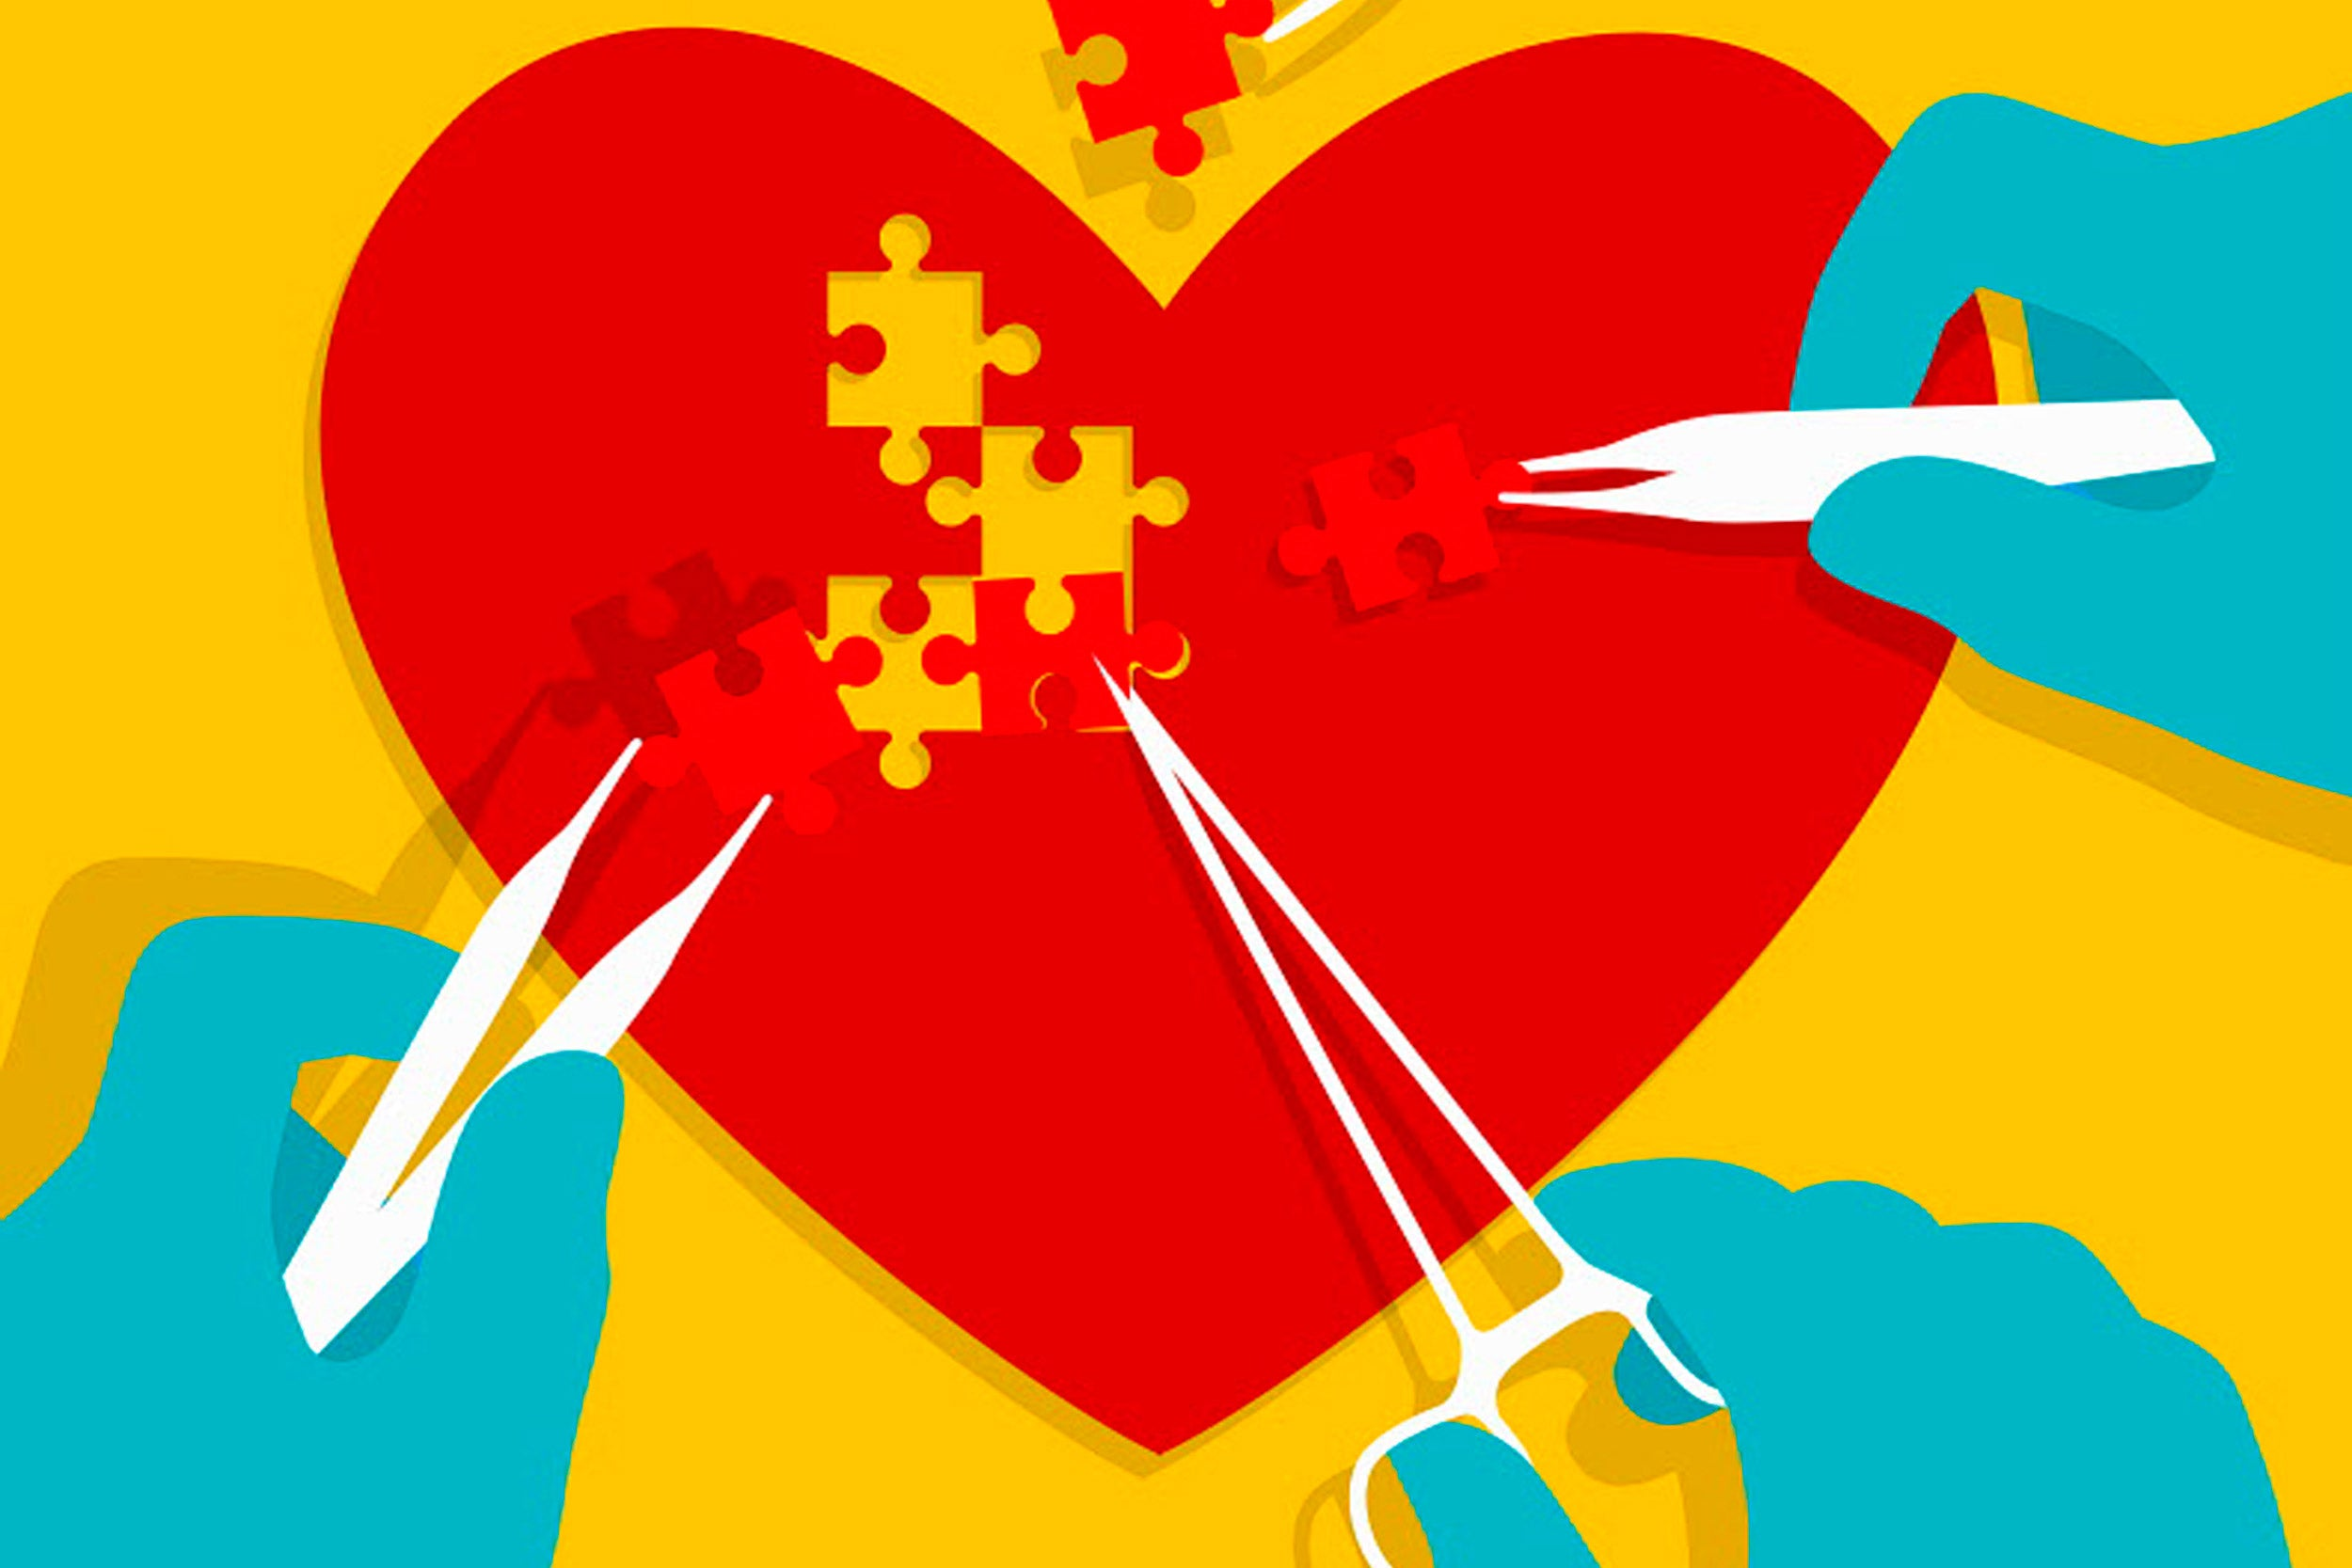 Illustration of heart with puzzle pieces.